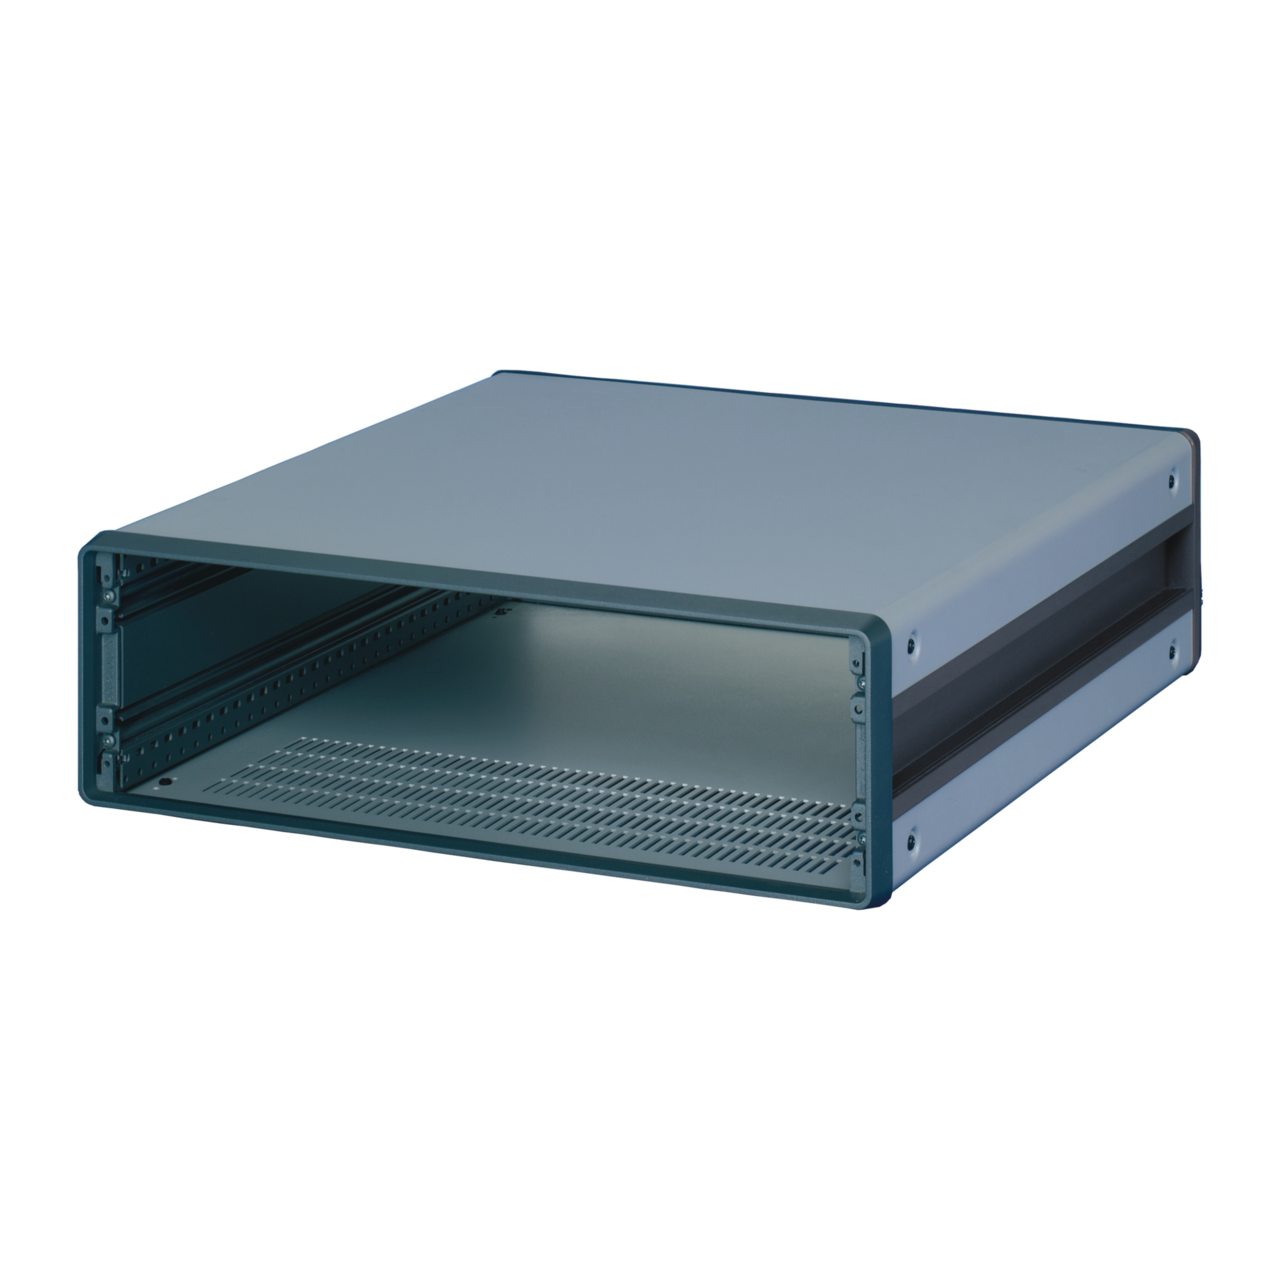 Image for CompacPRO, Case, Unshielded, Desktop from Schroff - Asia Pacific